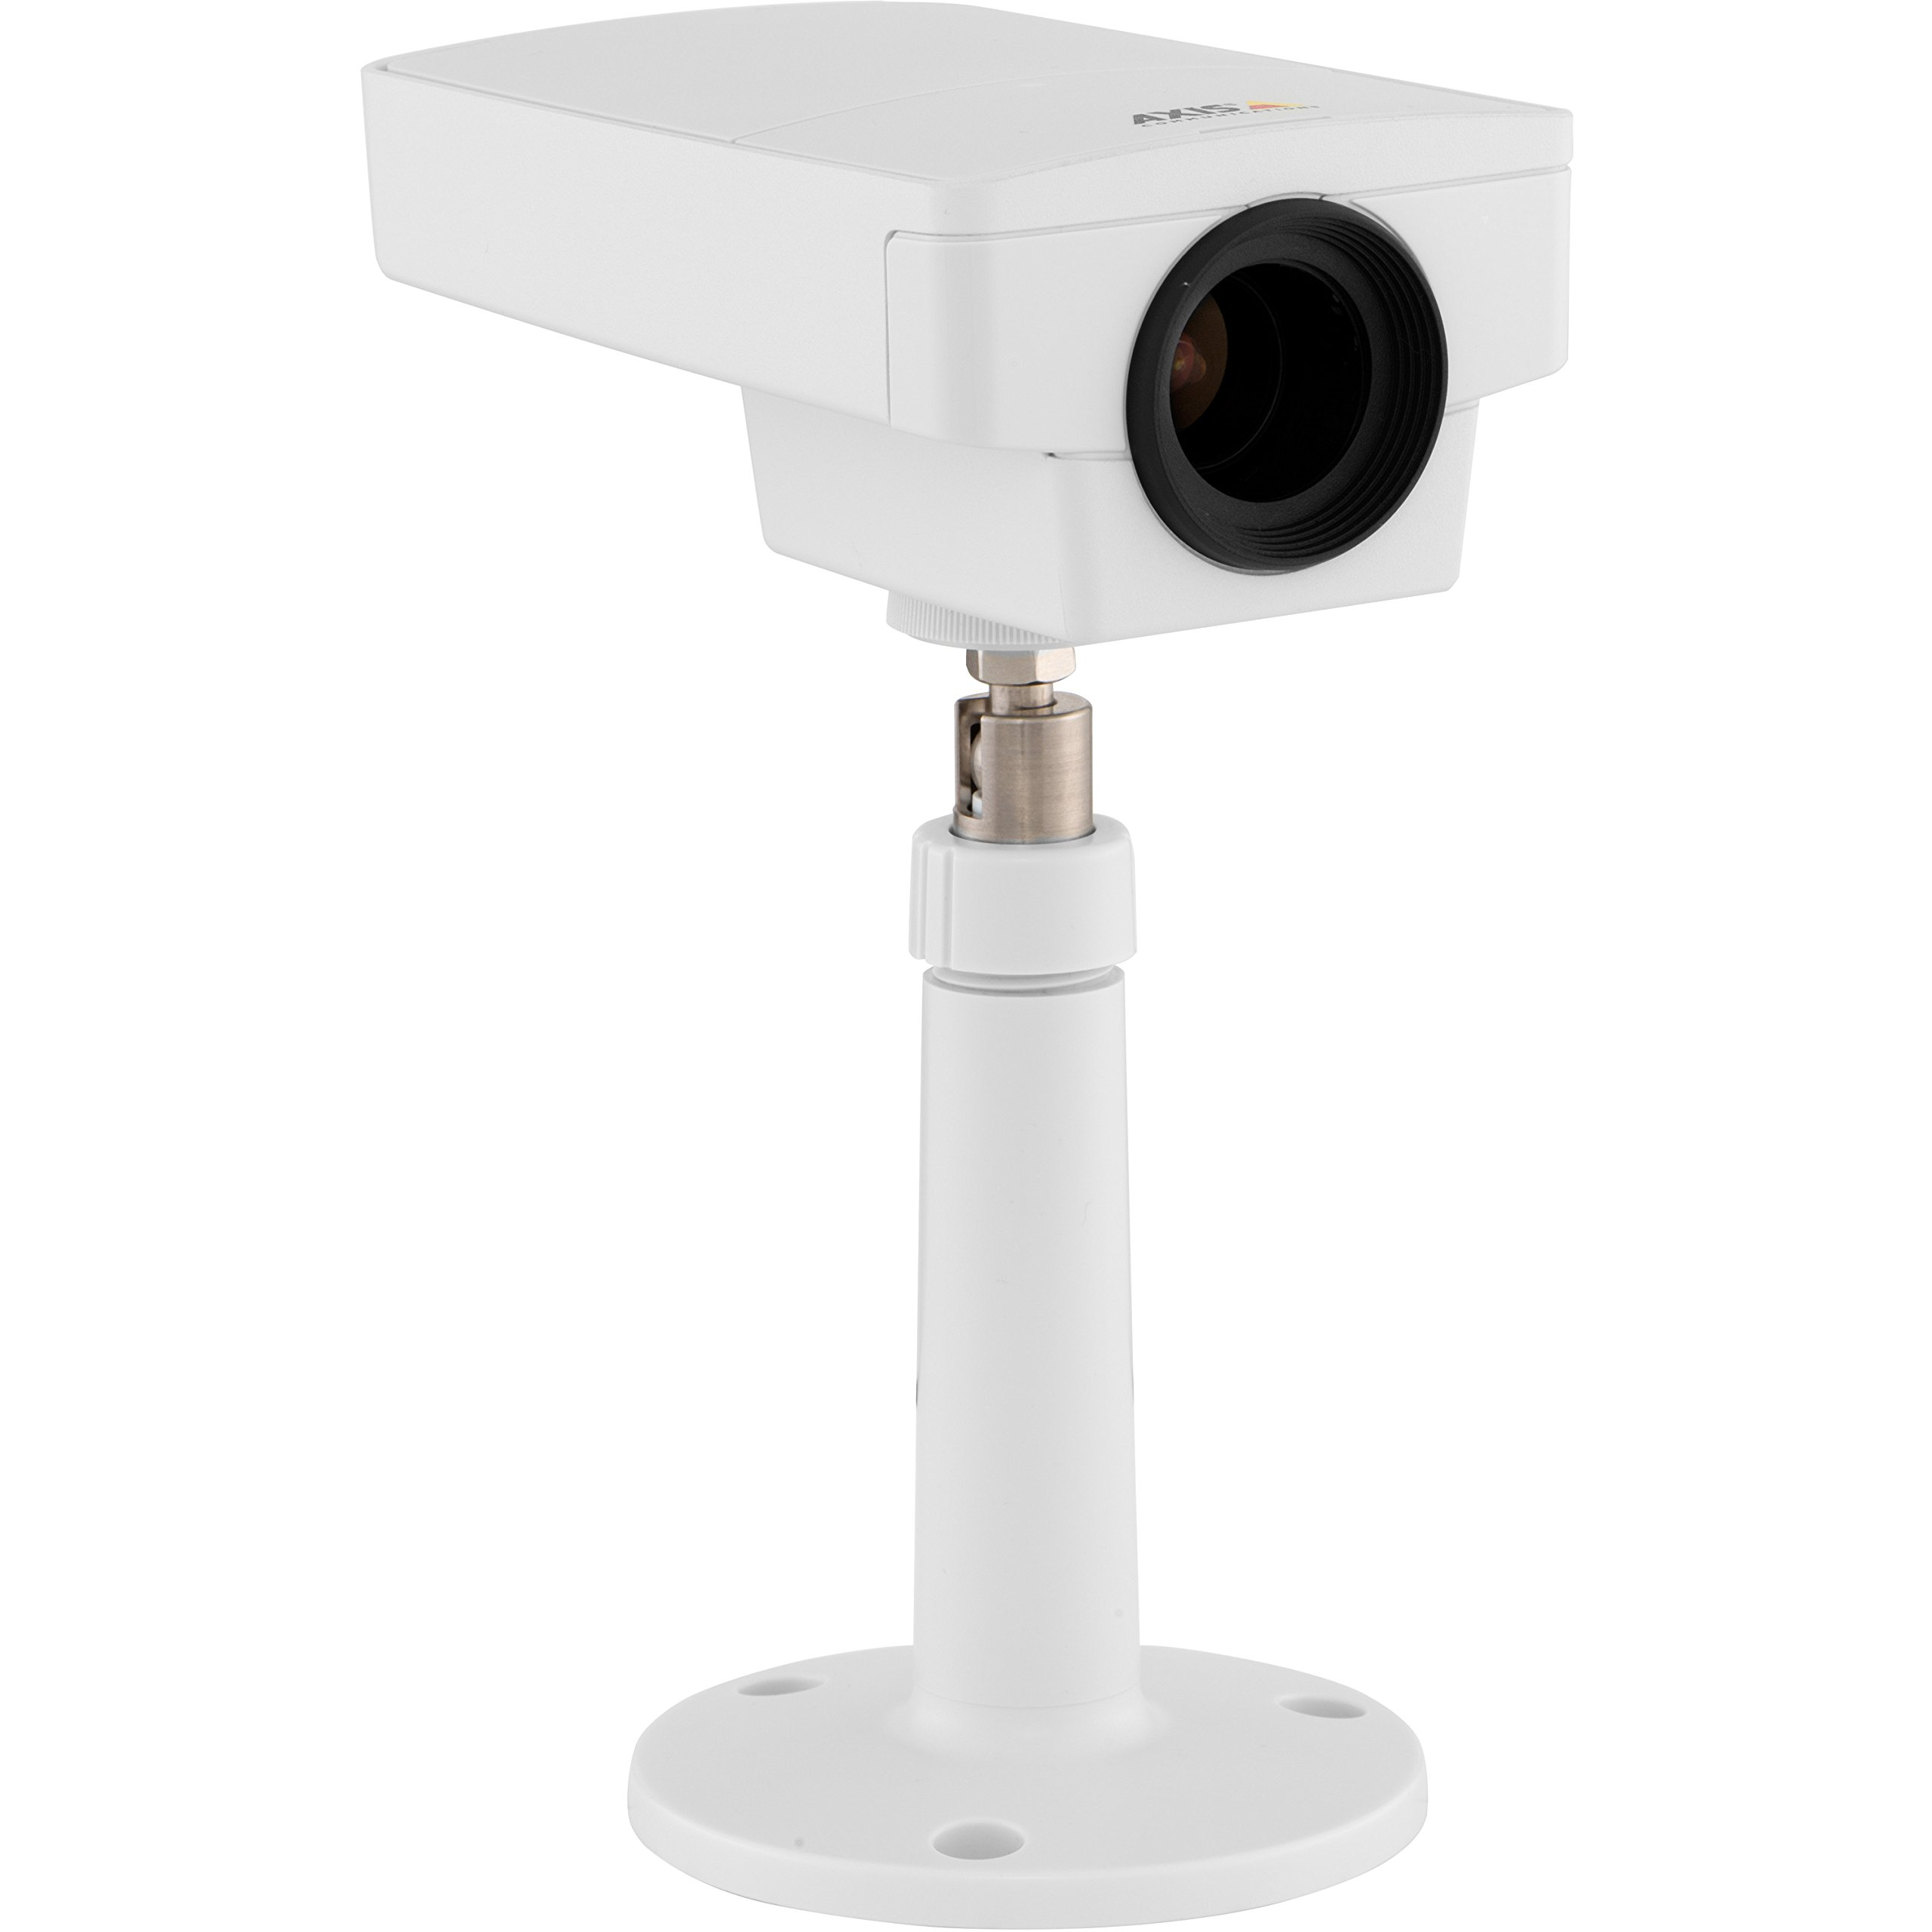 The Excellent Quality M1145 fixed network camera by Generic